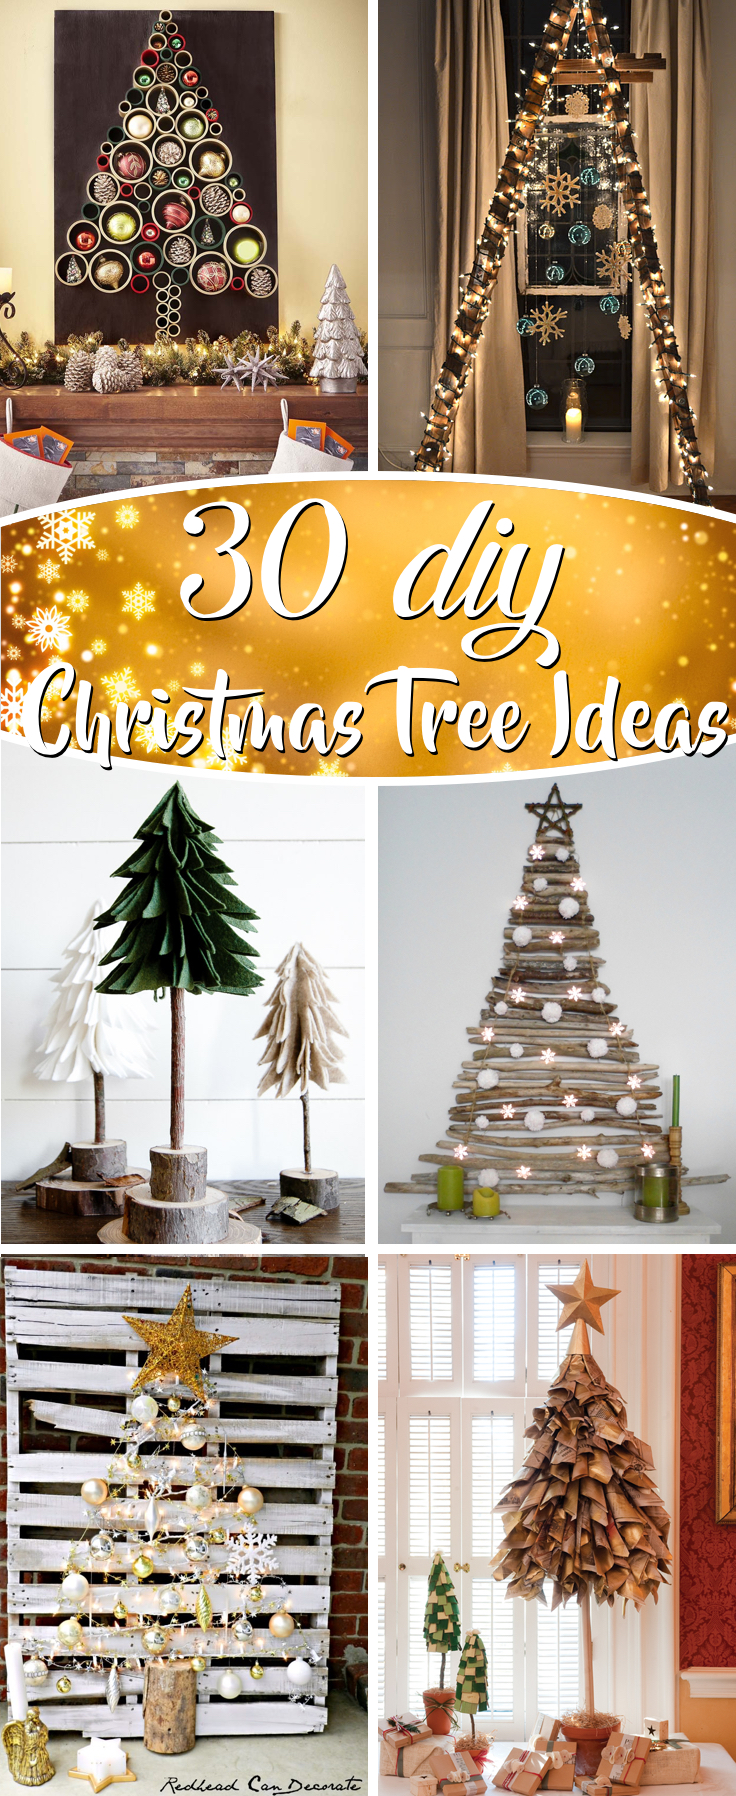 30 Diy Christmas Tree Ideas To Go A Little Unconventional This Year Cute Diy Projects